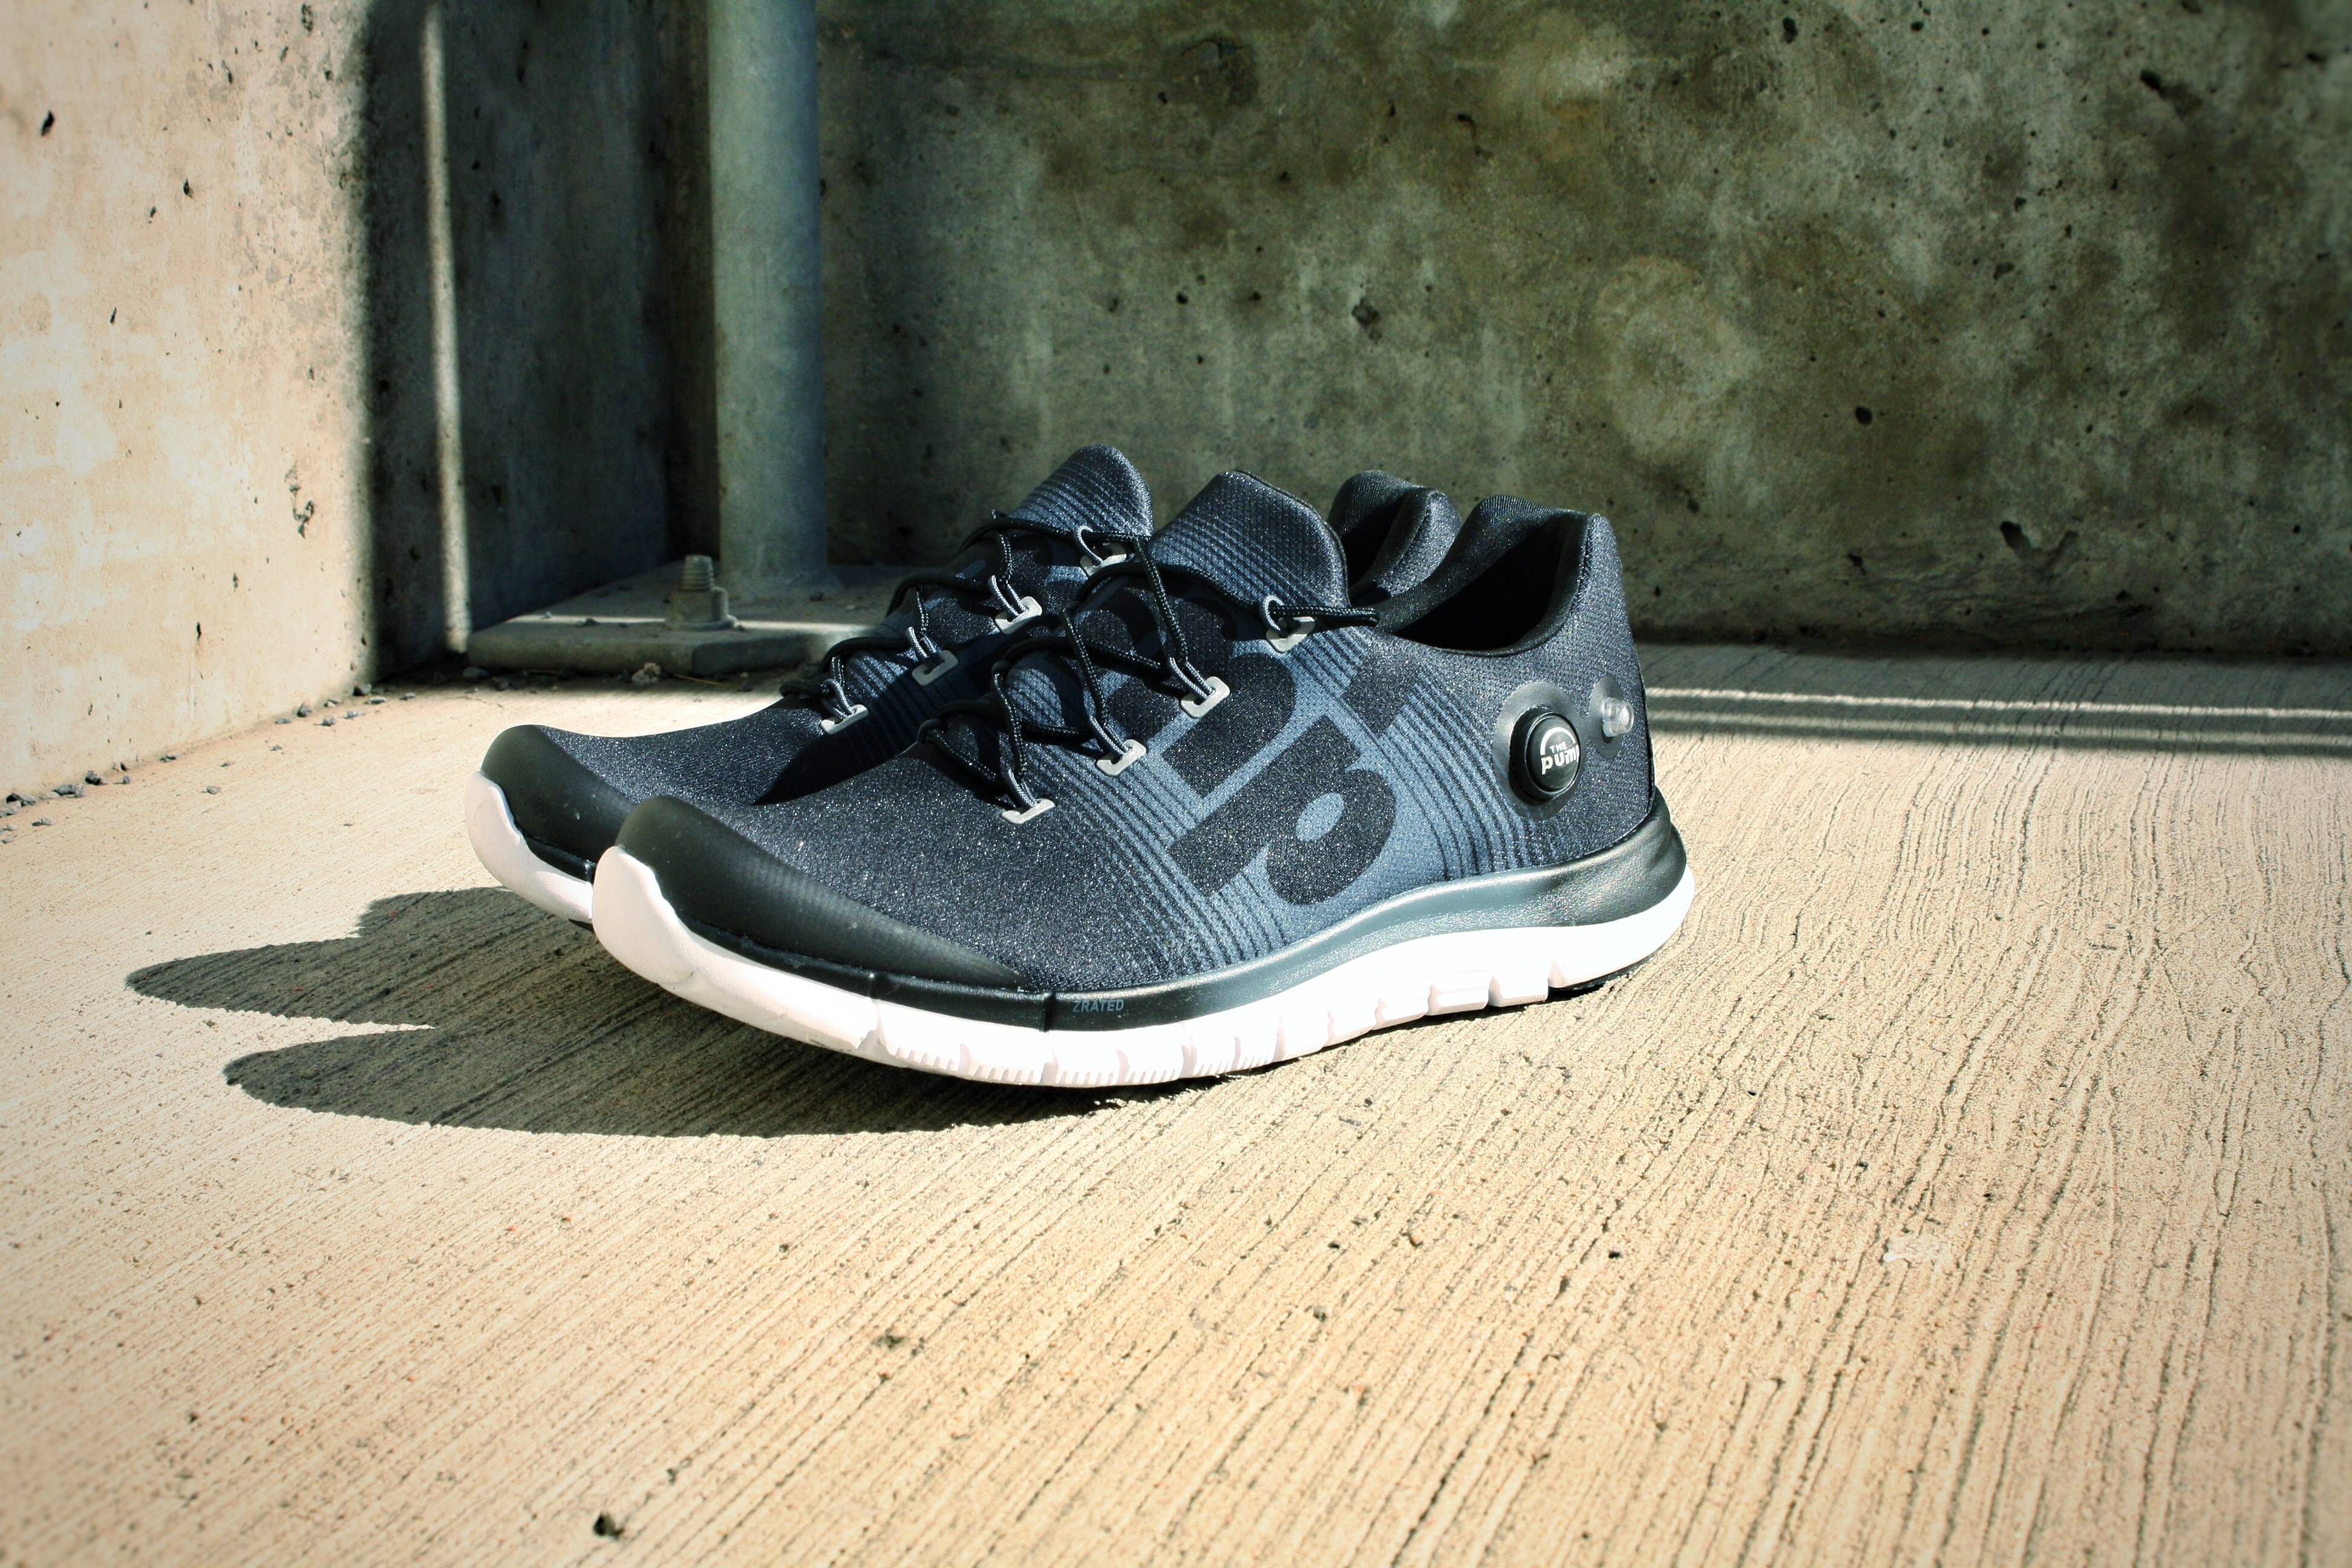 the pump reebok shoes